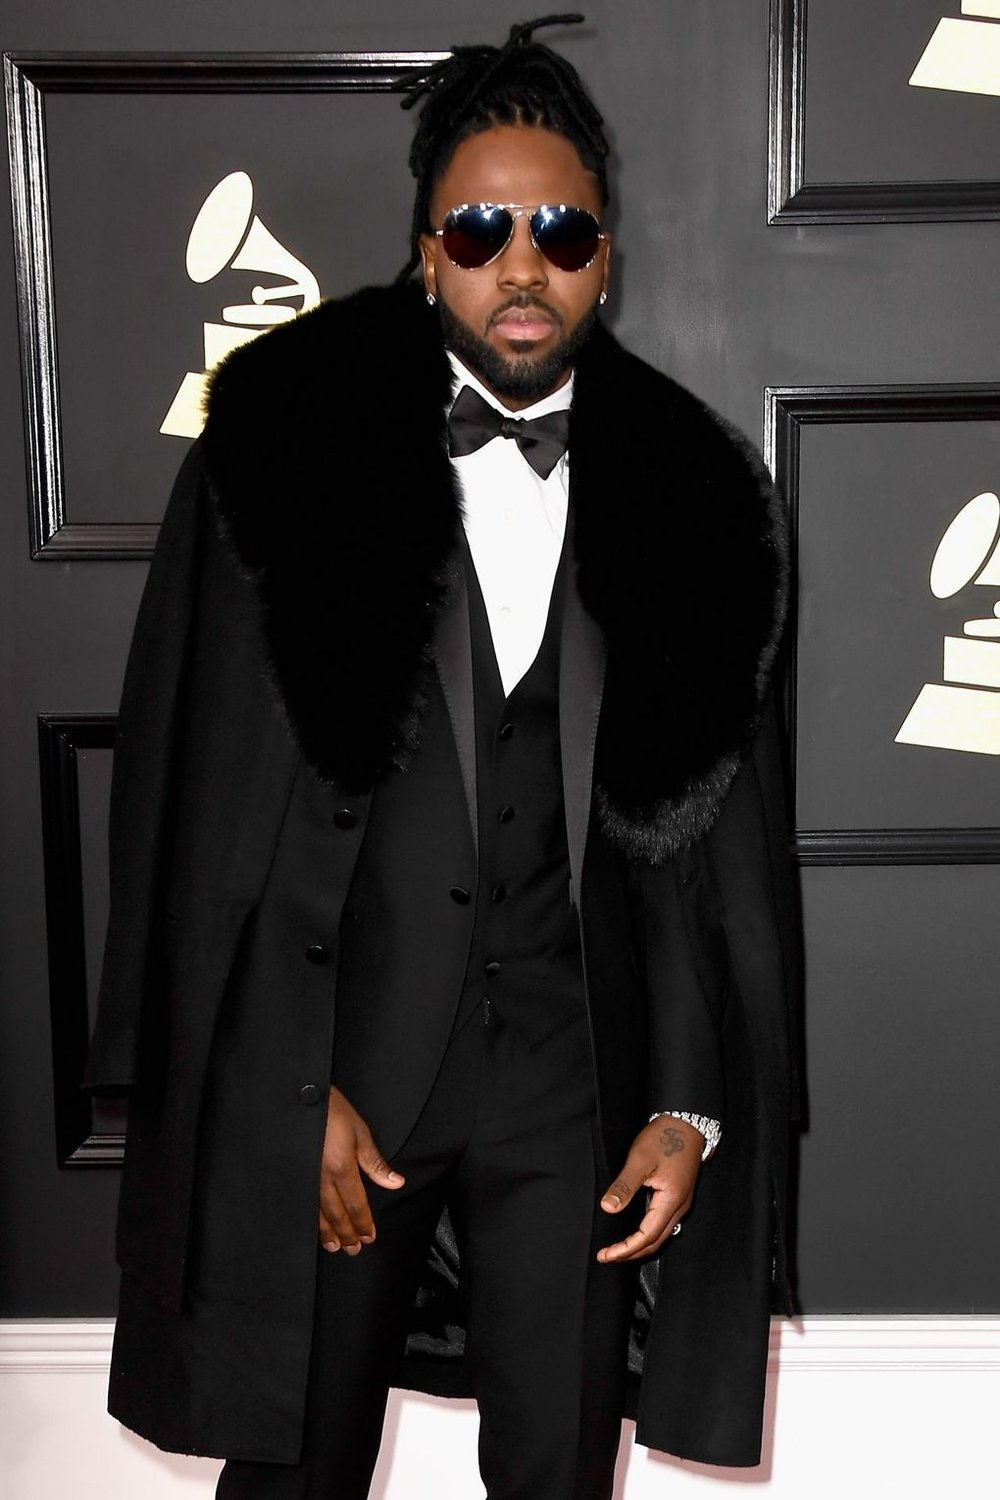 Jason DeRulo literally woofs it up with a perfectly-manicured beard and a luscious fur-collar overcoat layered over a classic suit get-up. This is how you make your presence known on the red carpet.